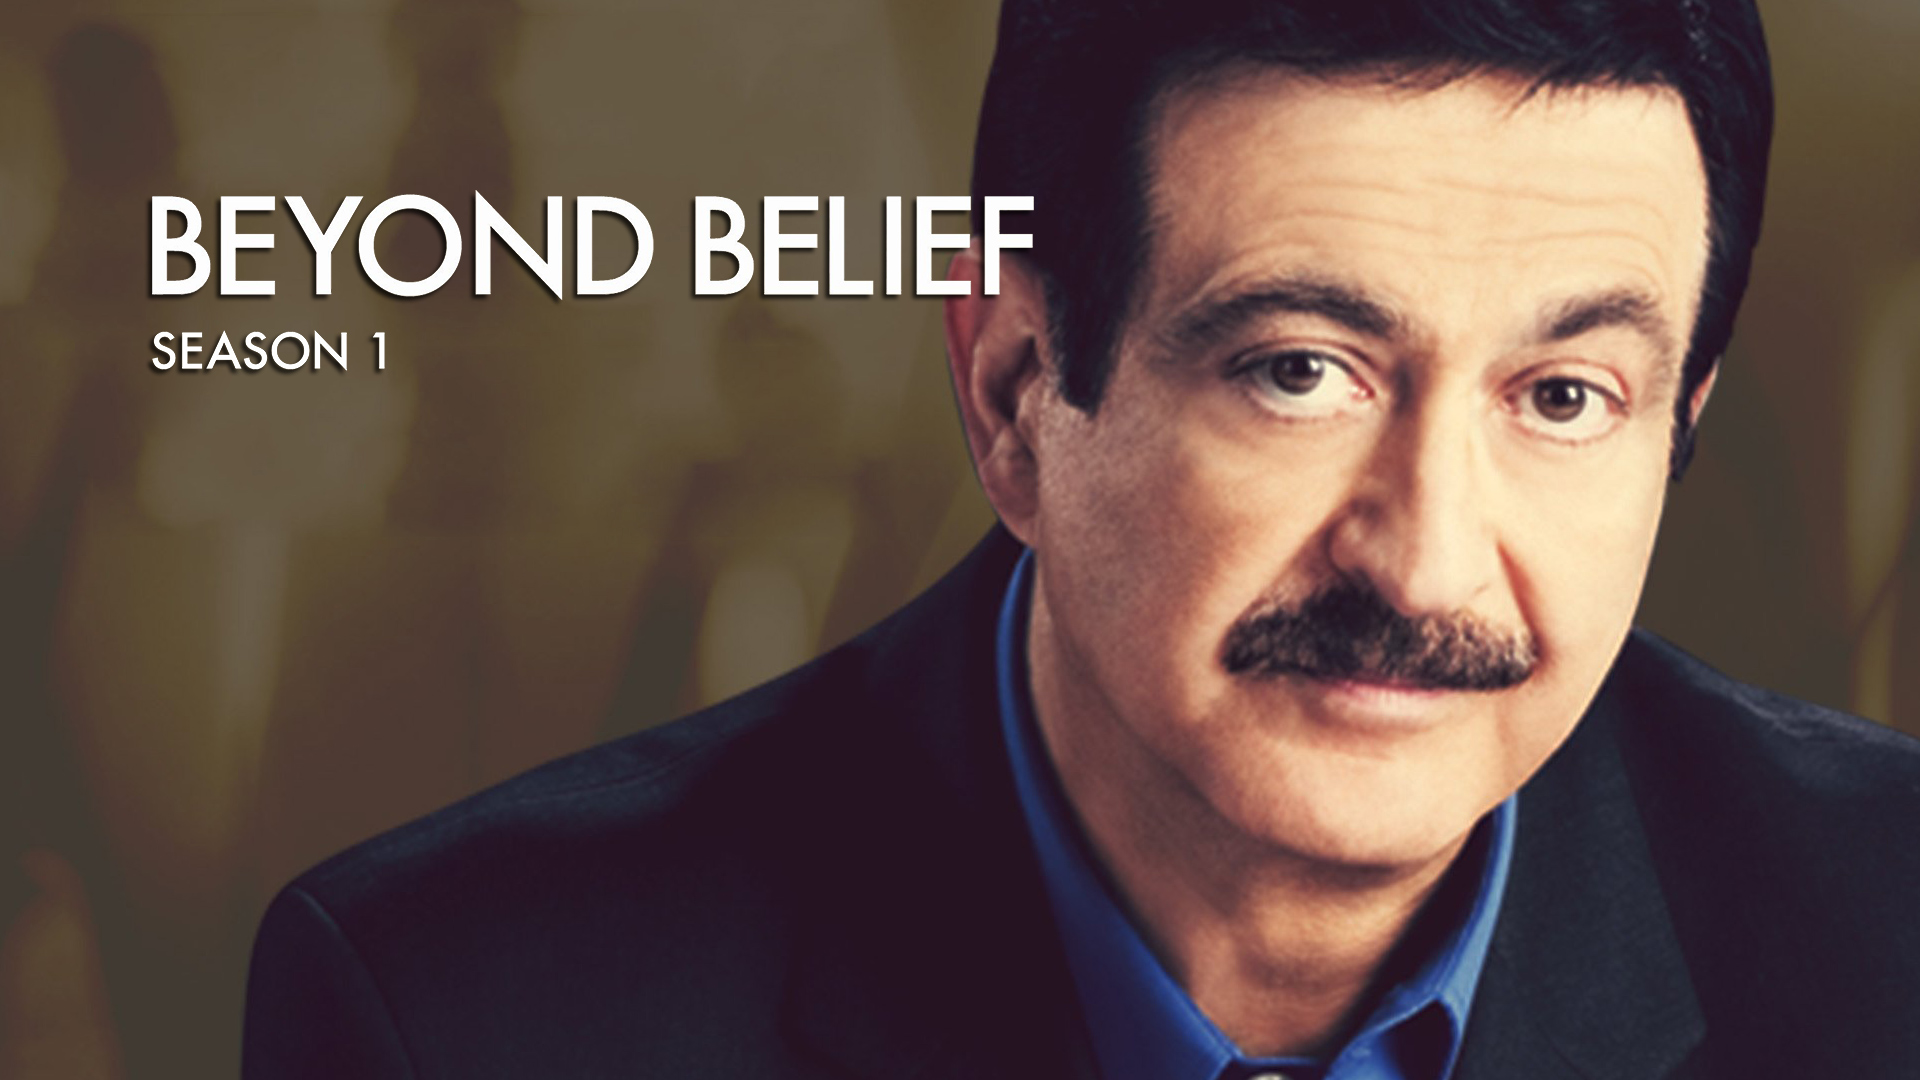 Beyond Belief - Season 1